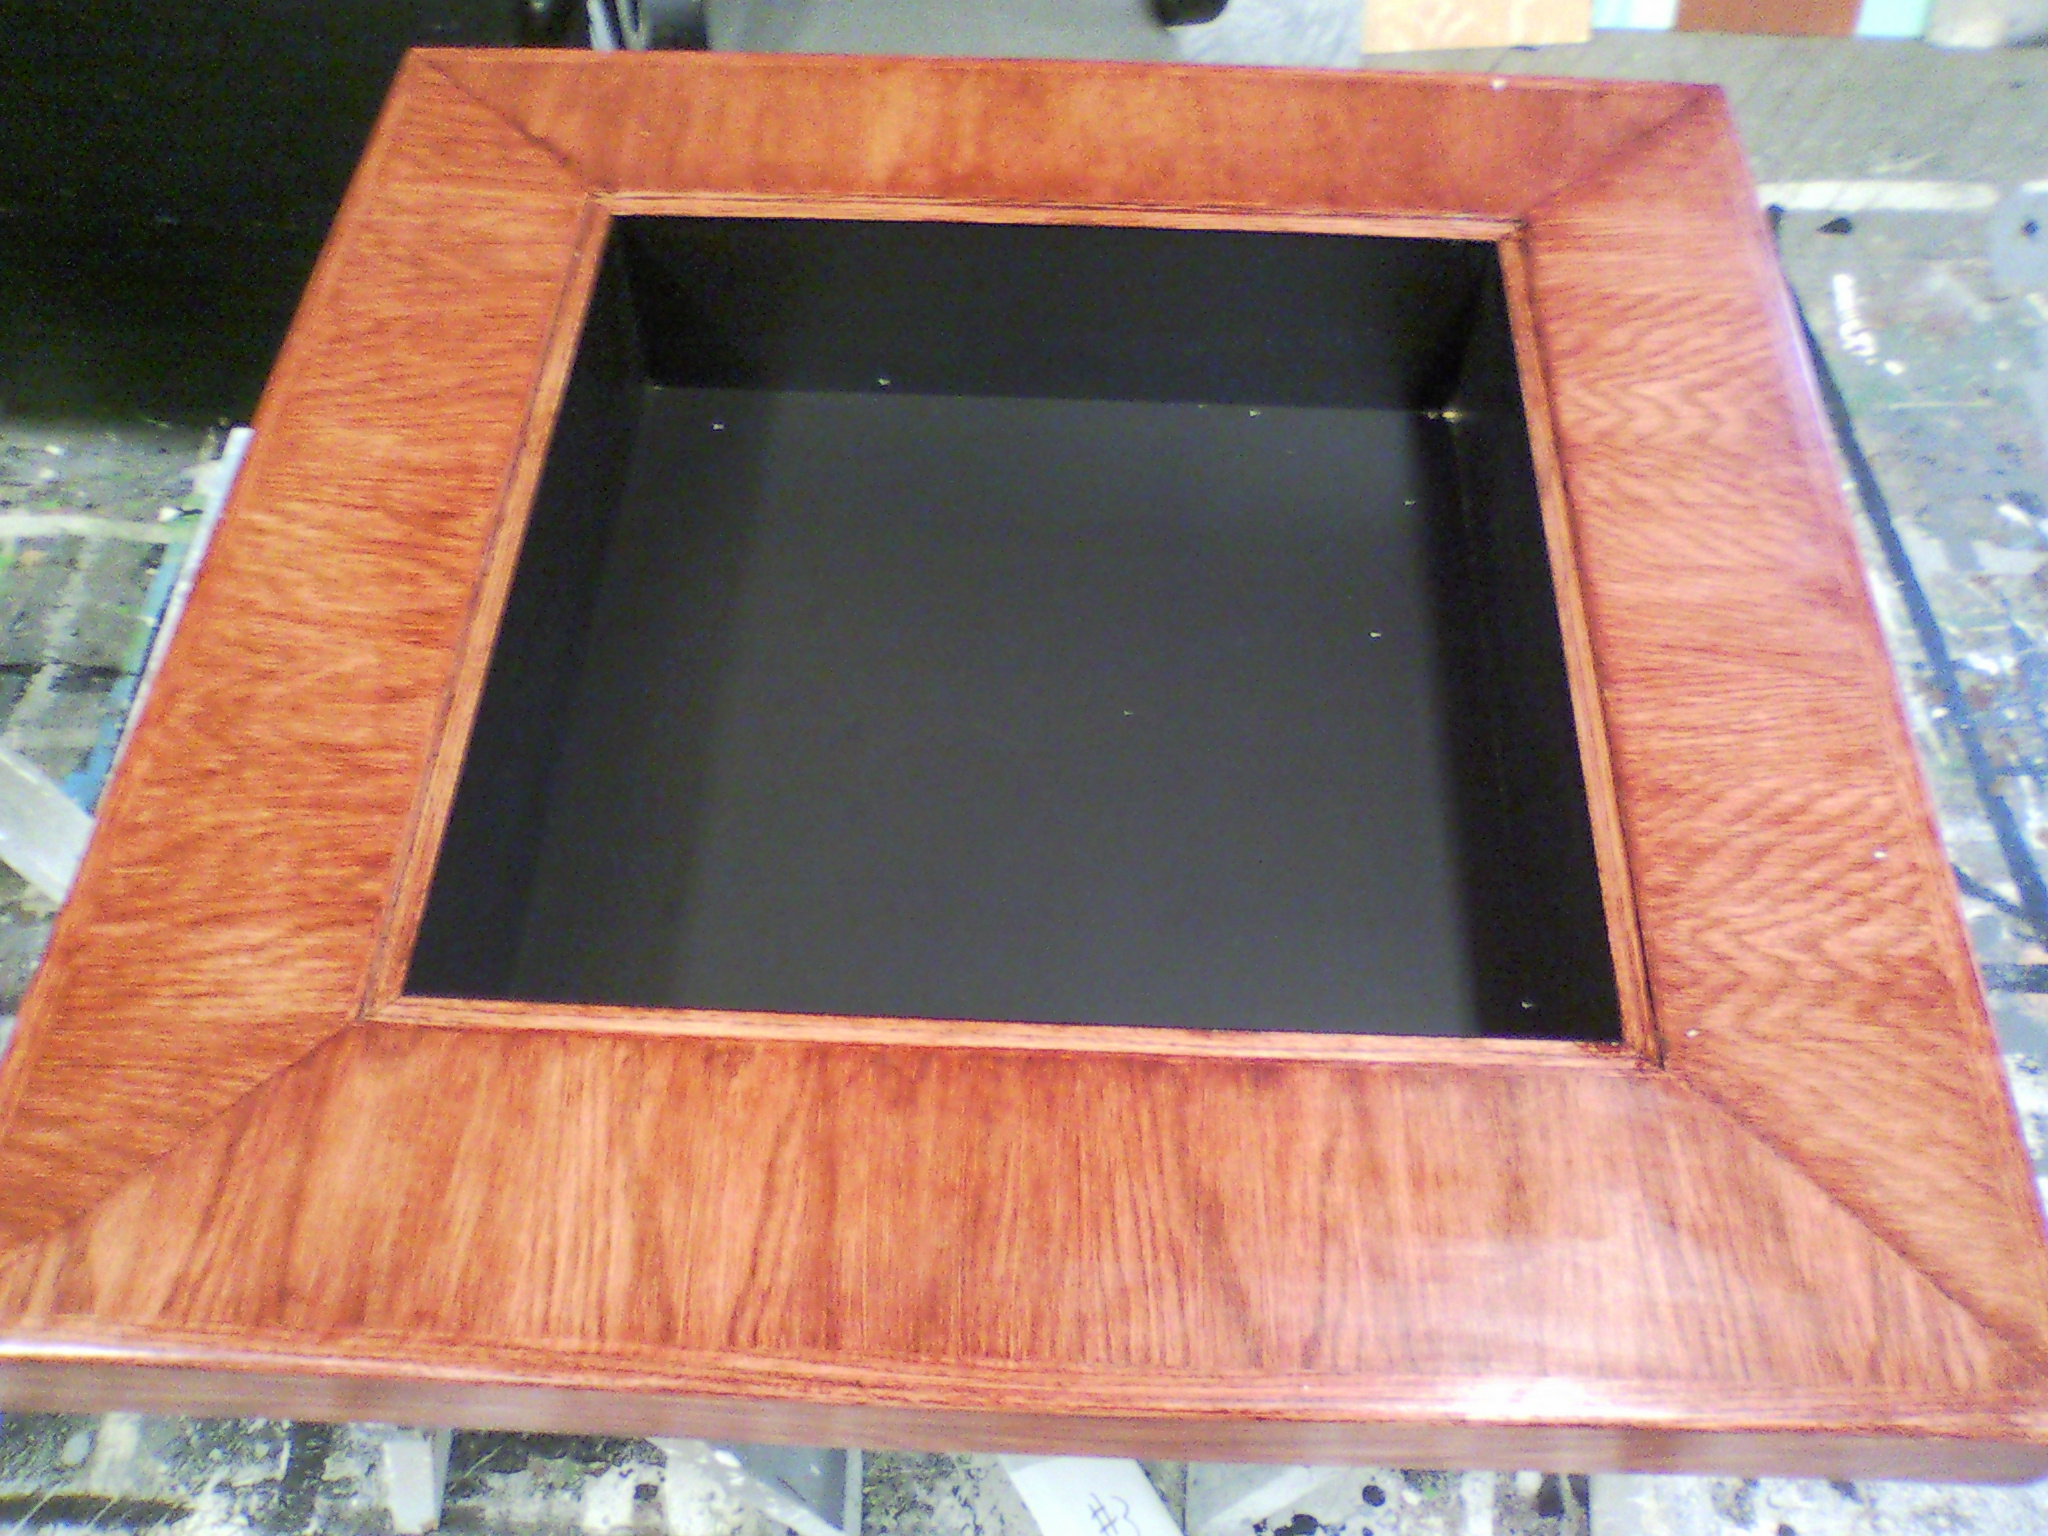 Black box table made for displaying products below glass.